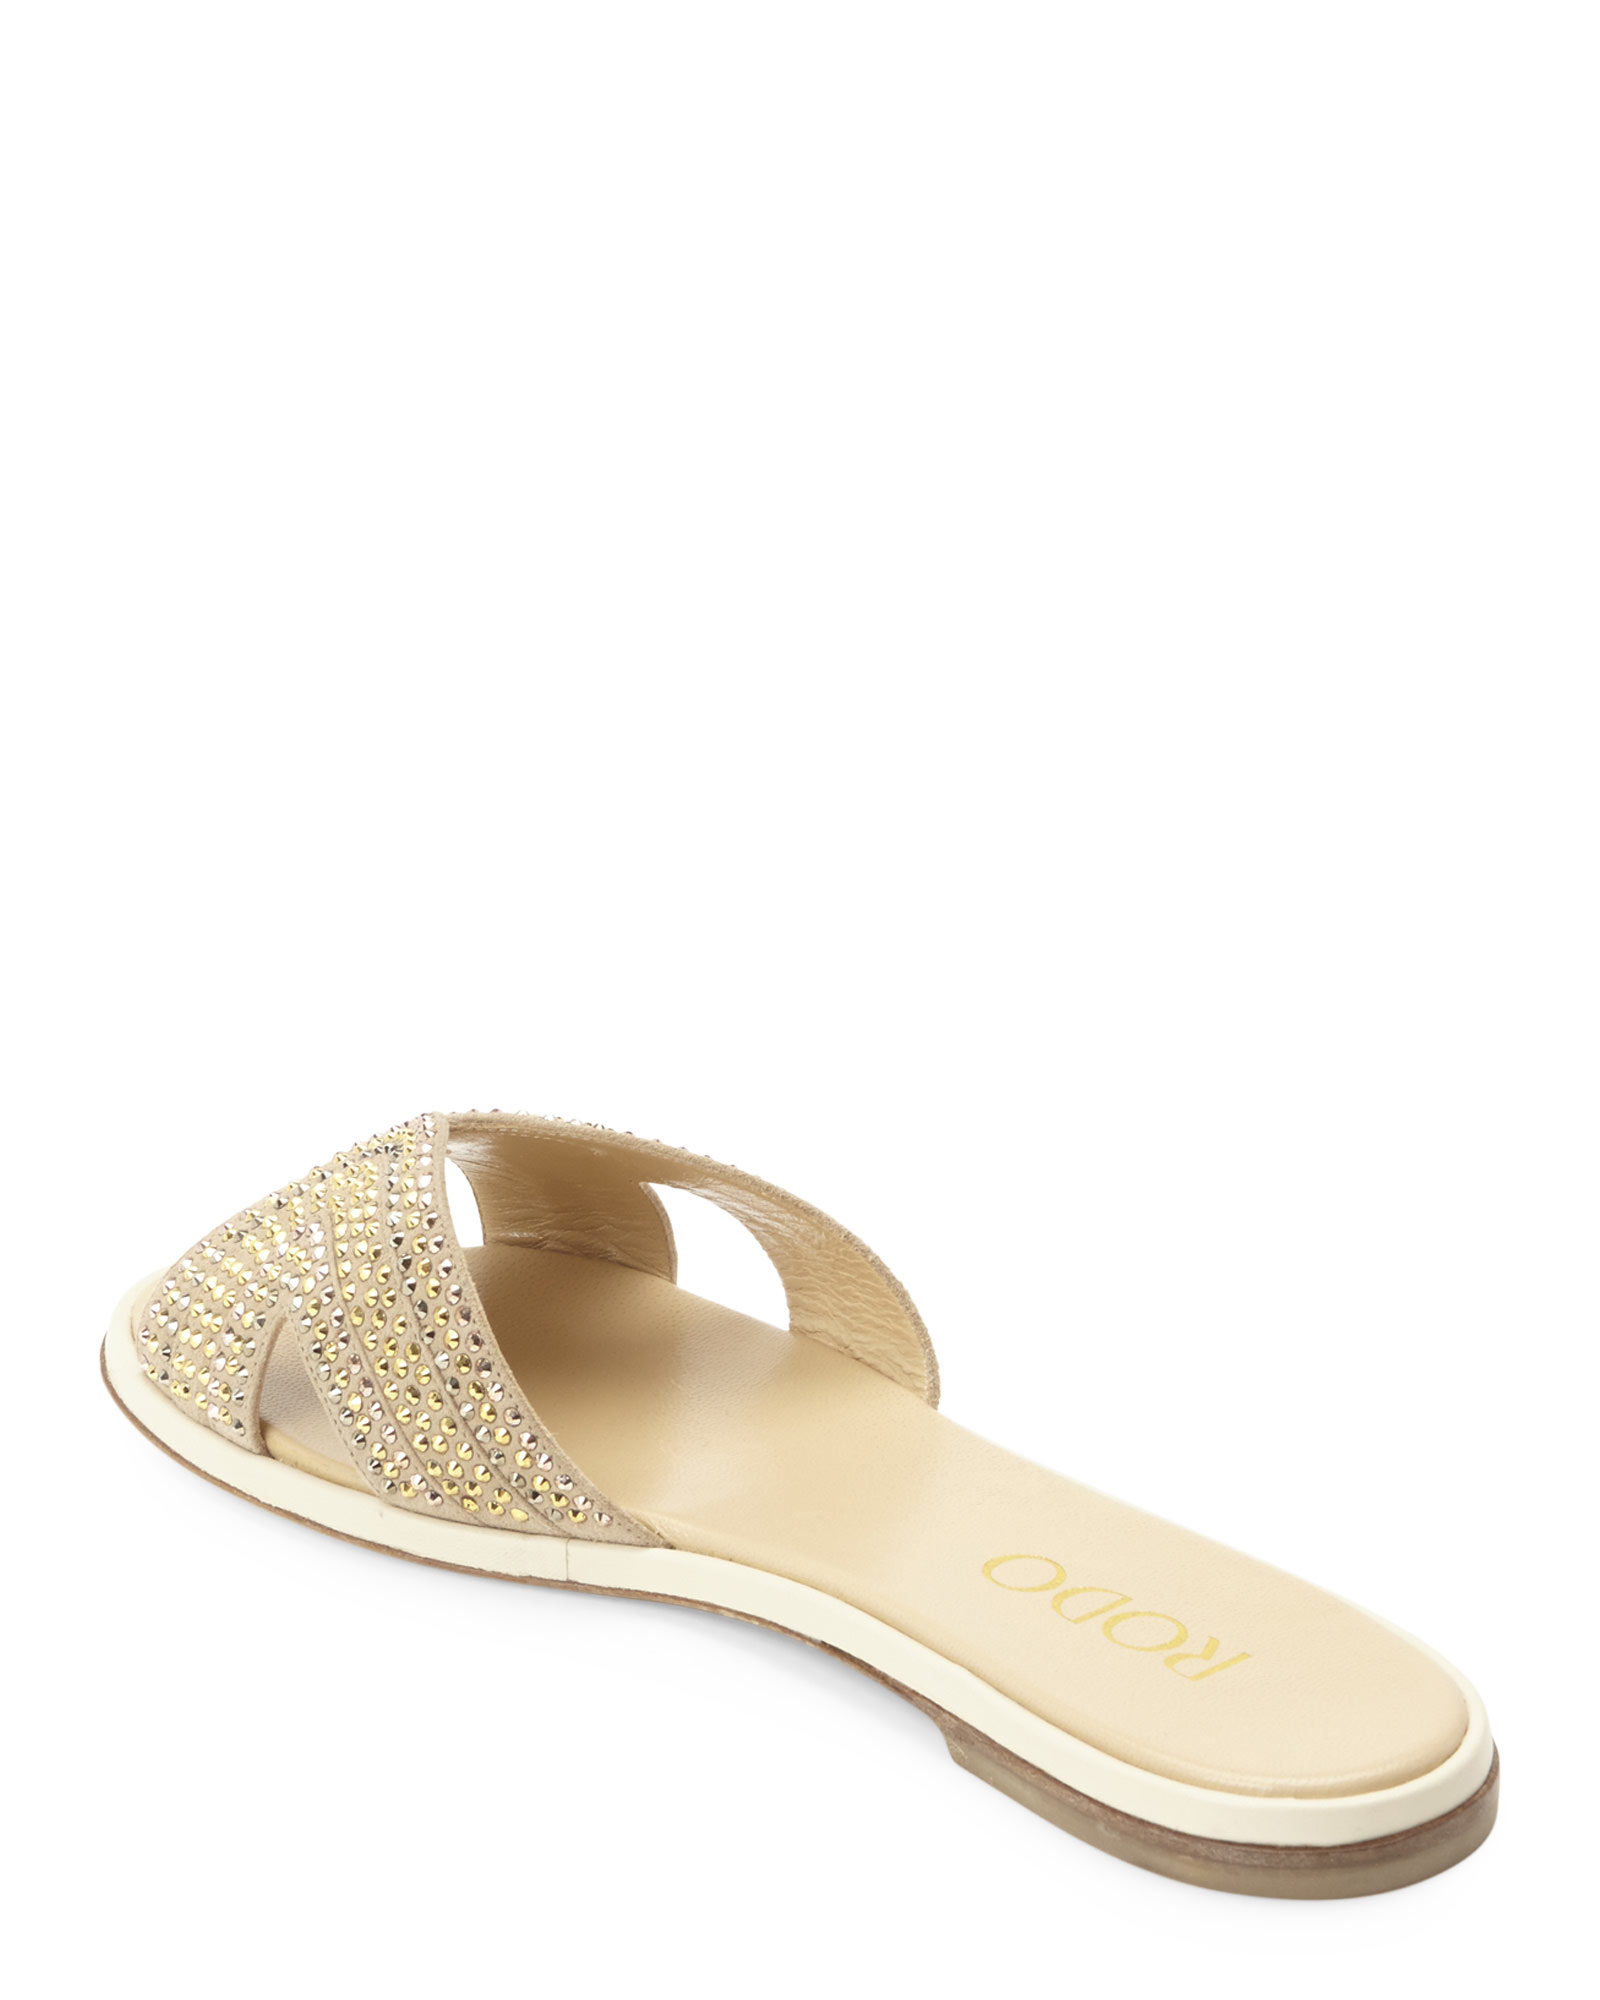 buy cheap low shipping fee Rodo slide sandals free shipping original outlet eastbay AKhkav1